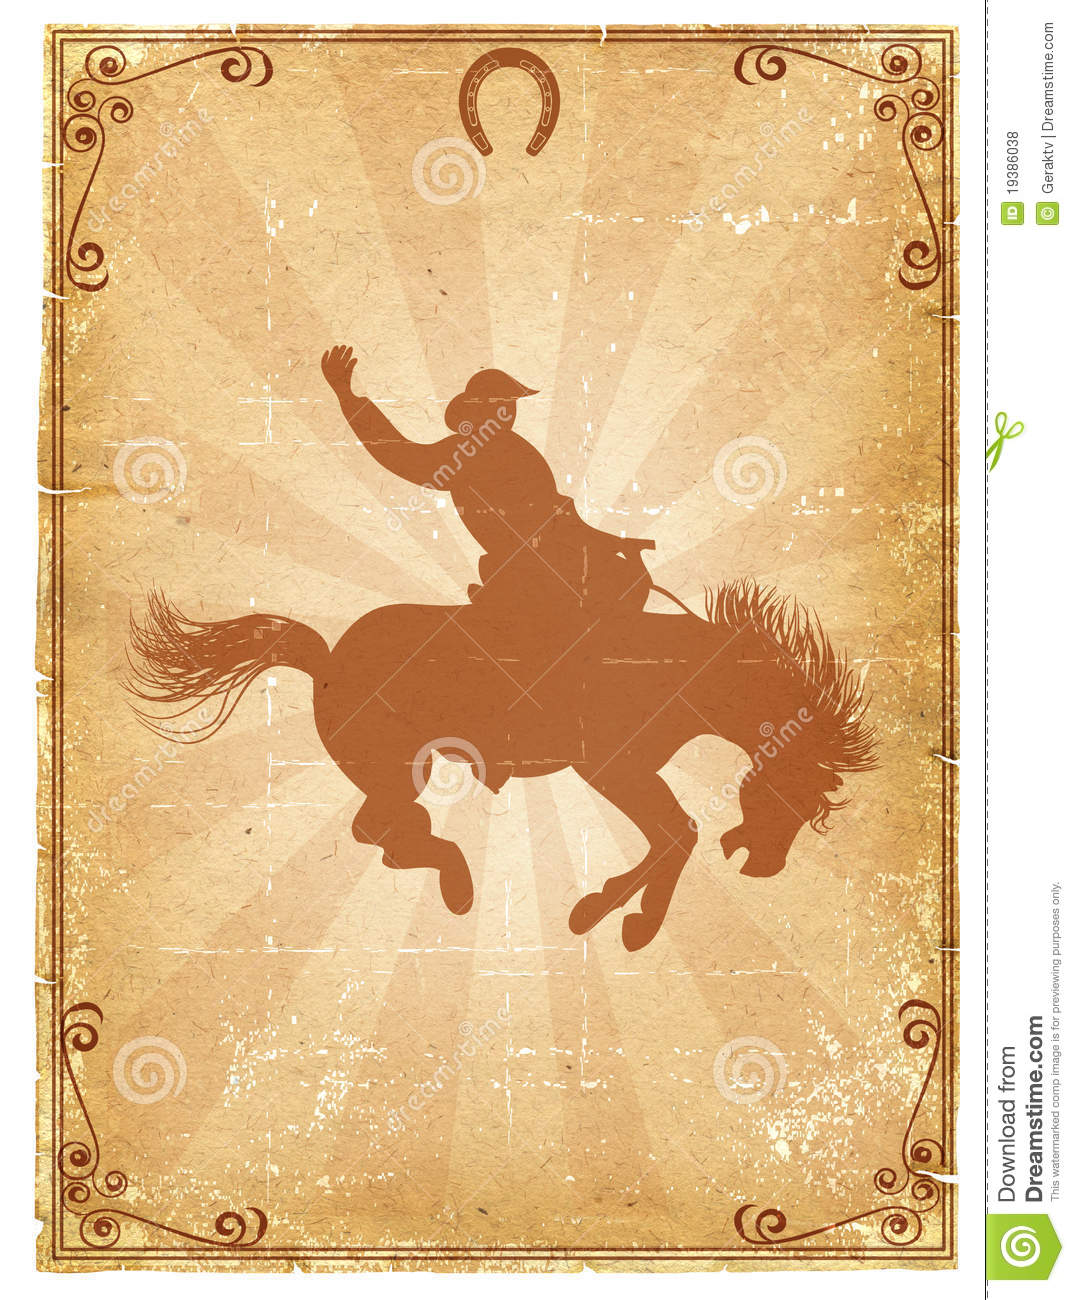 Cowboy old paper background for text with decor frame .Retro rodeo ...